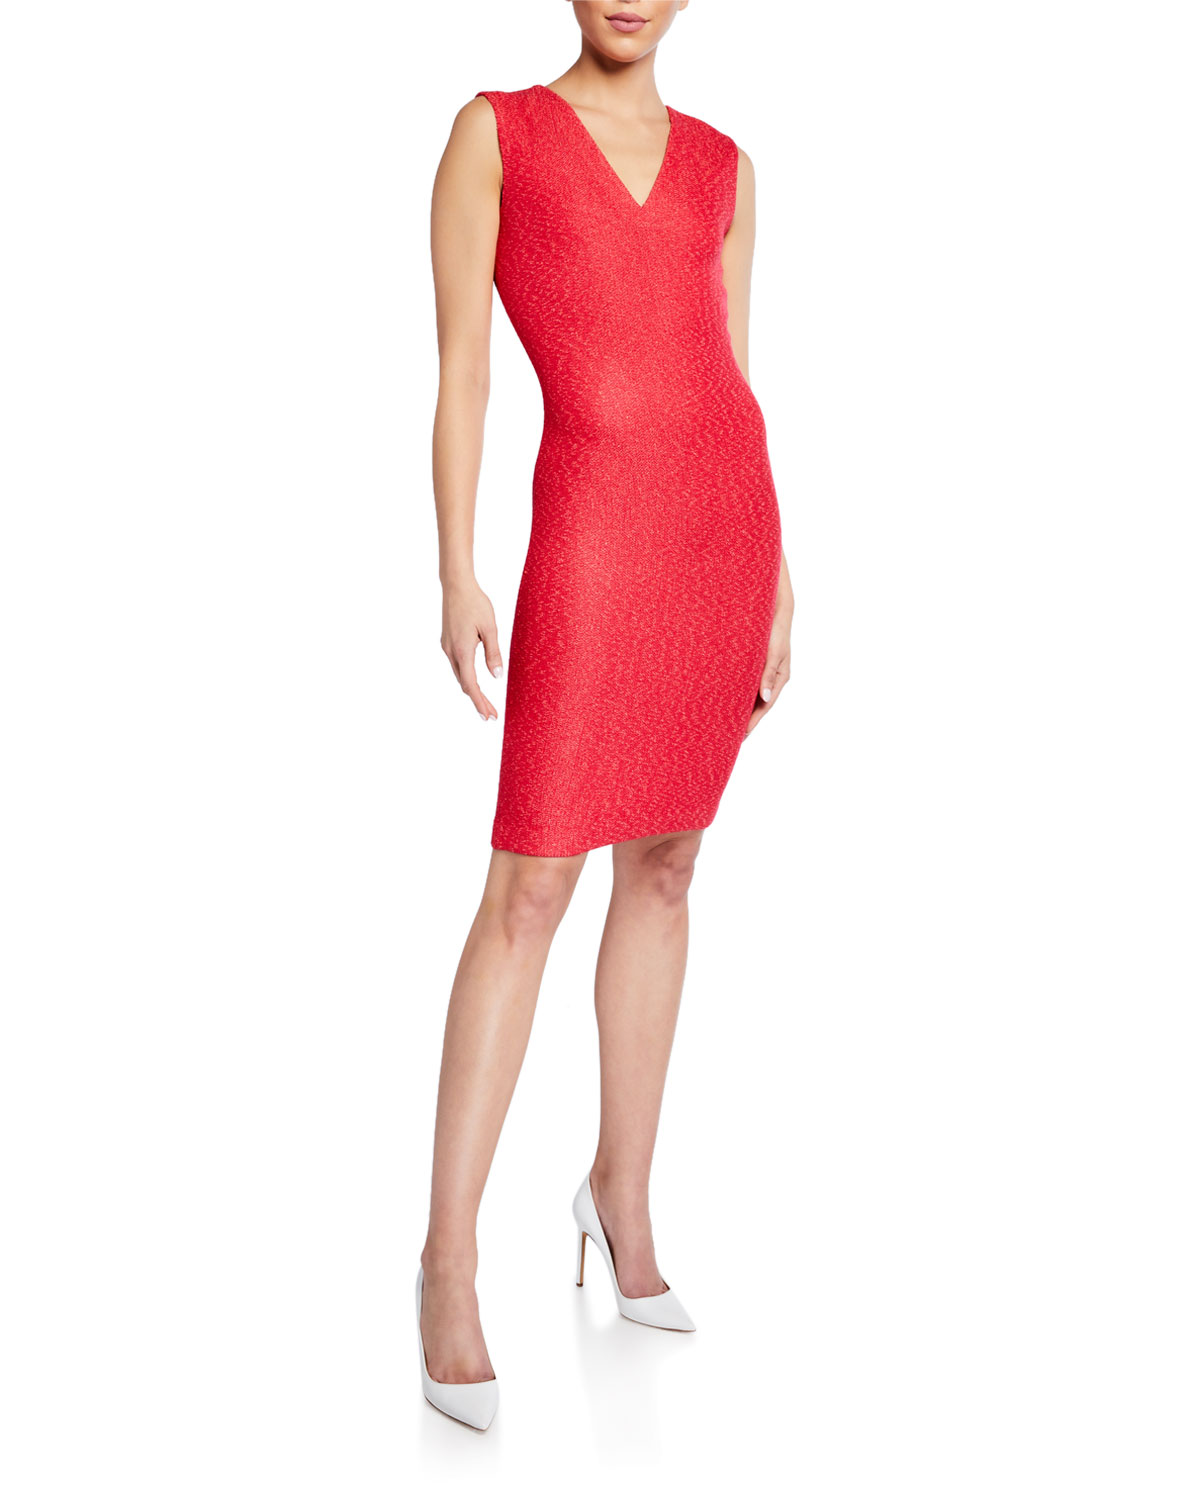 St. John V-NECK REFINED KNIT BODYCON DRESS